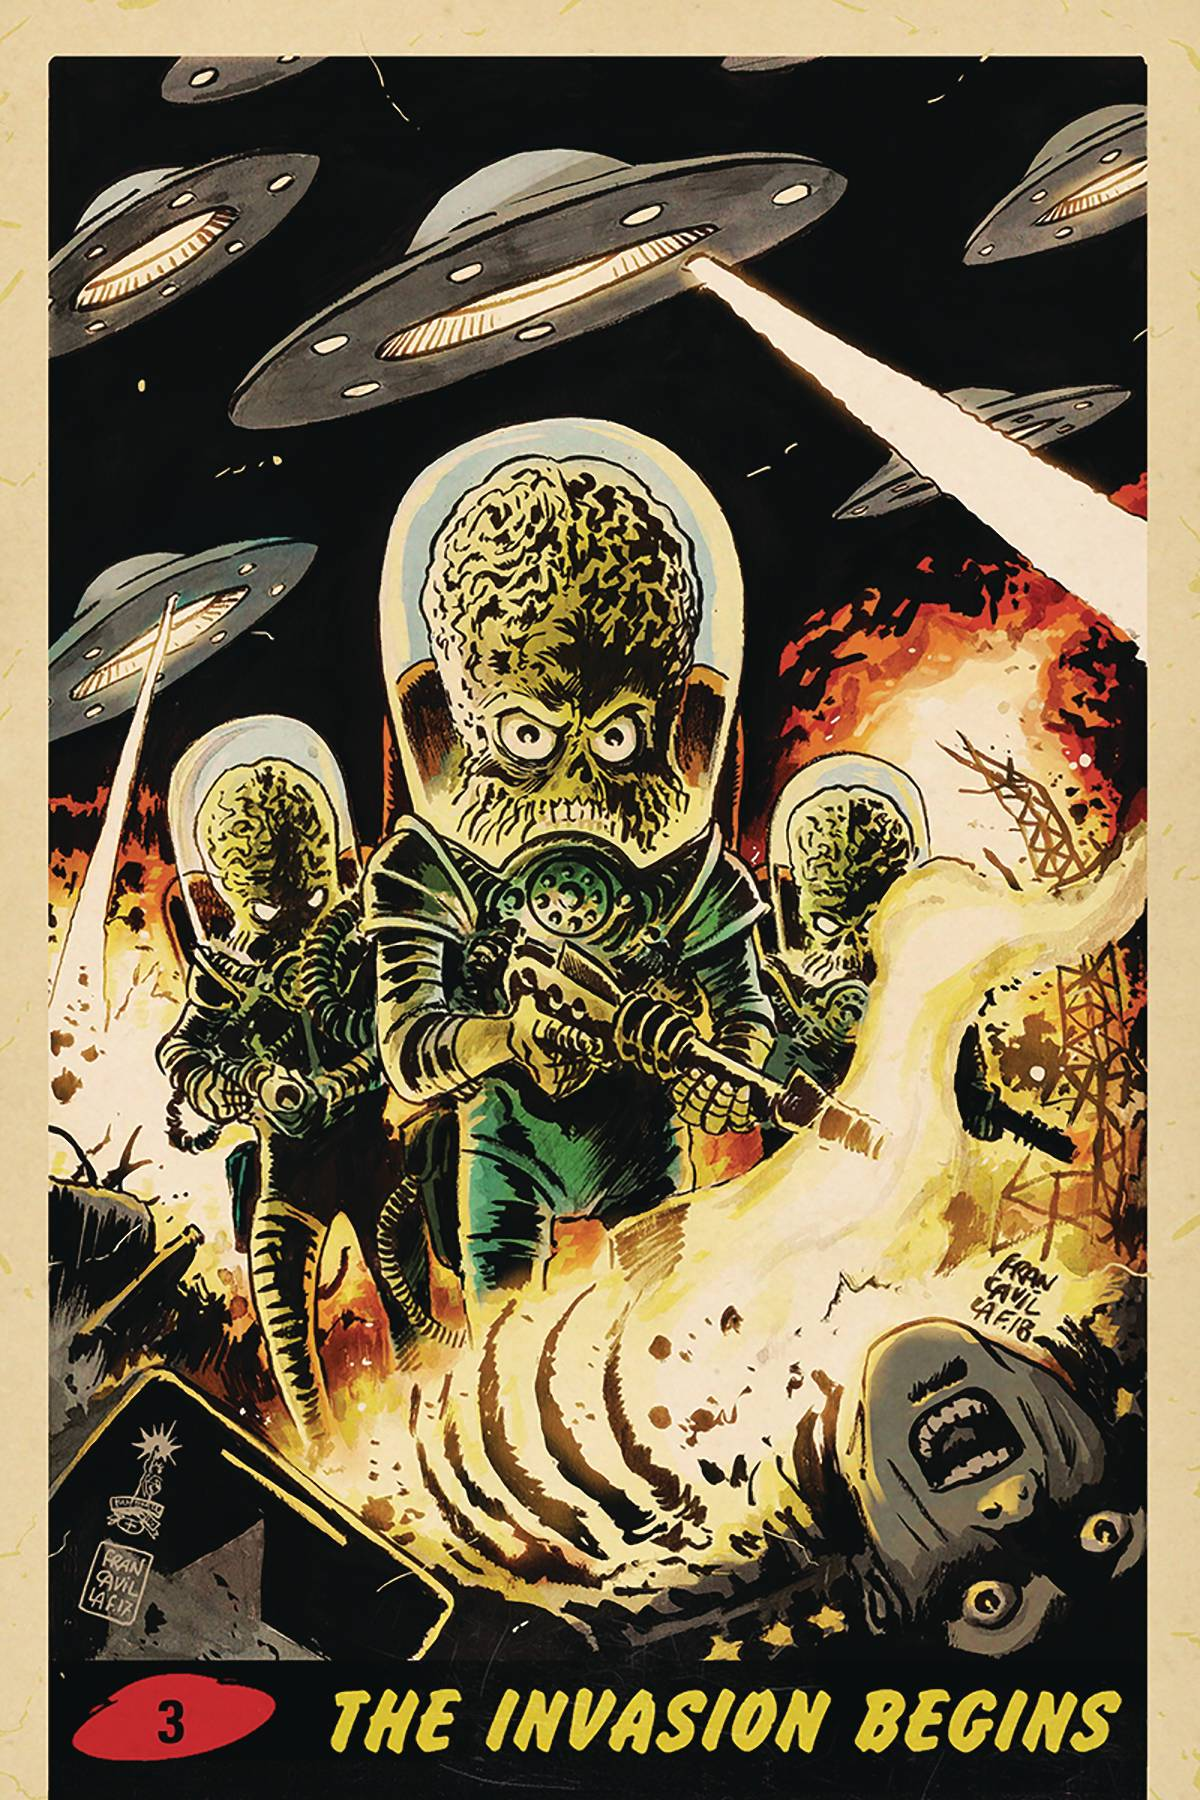 MARS ATTACKS 3 10 COPY FRANCOVILLA VIRGIN INCV.jpg